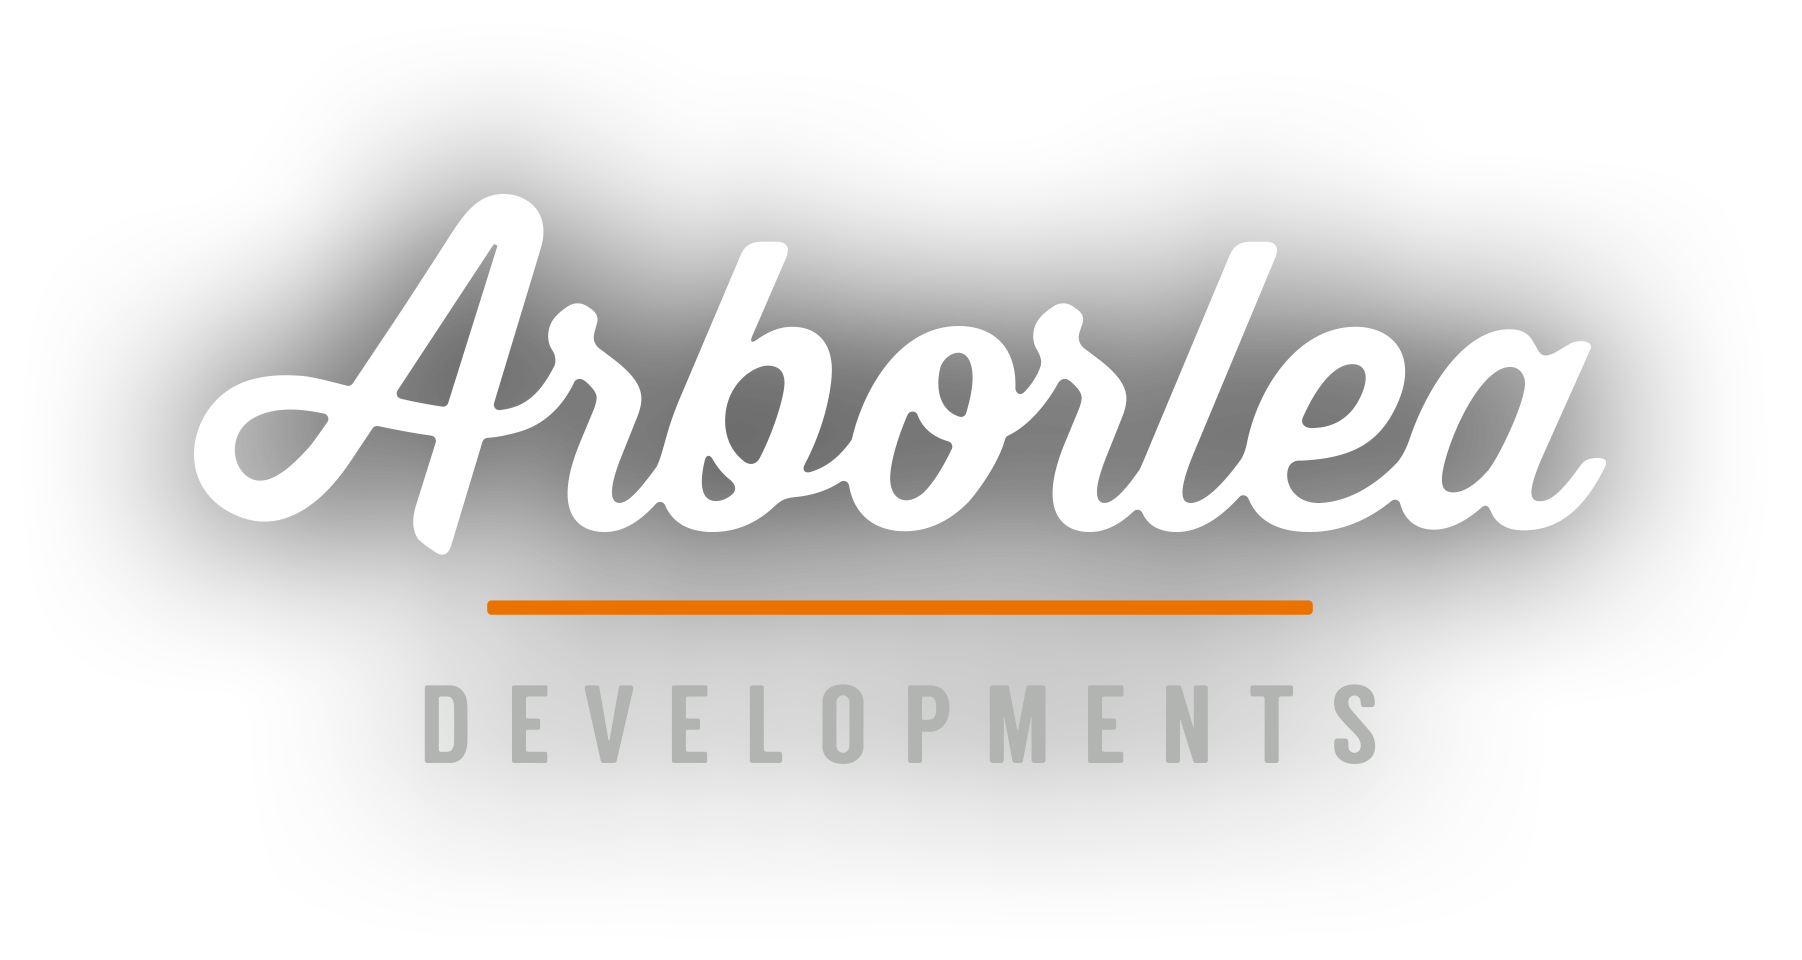 Arborlea Developments